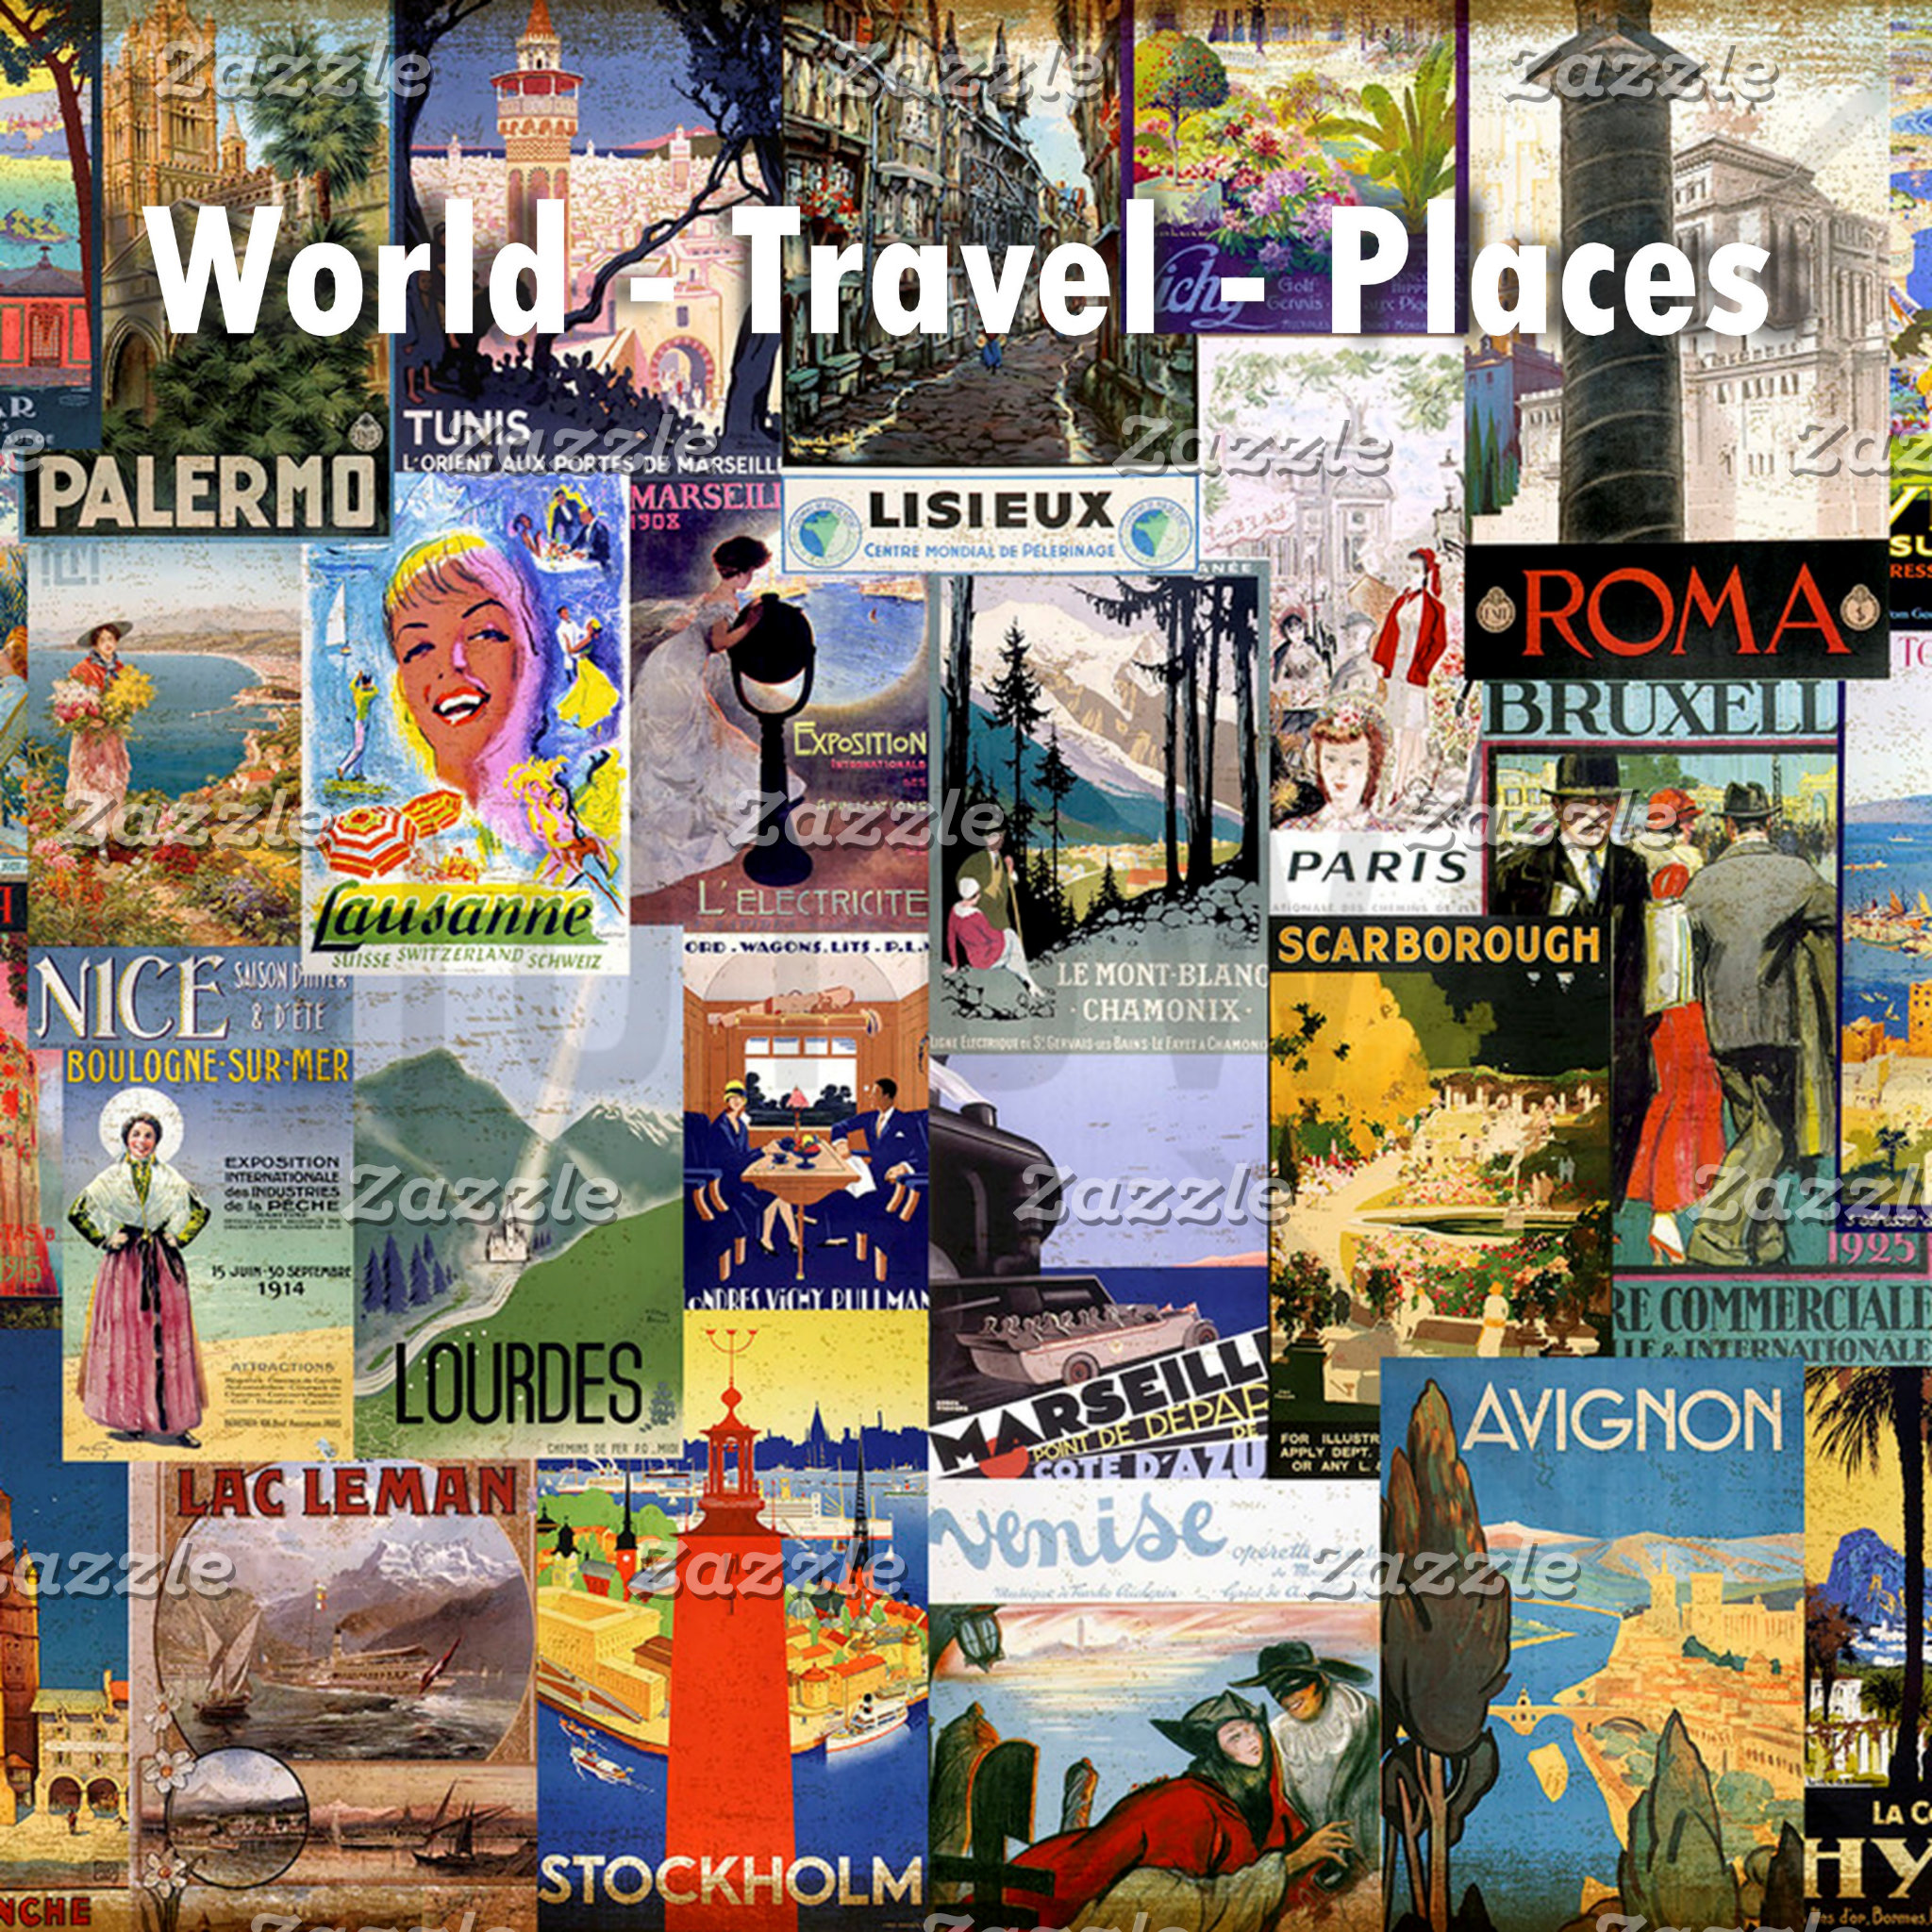 Travel, WORLD